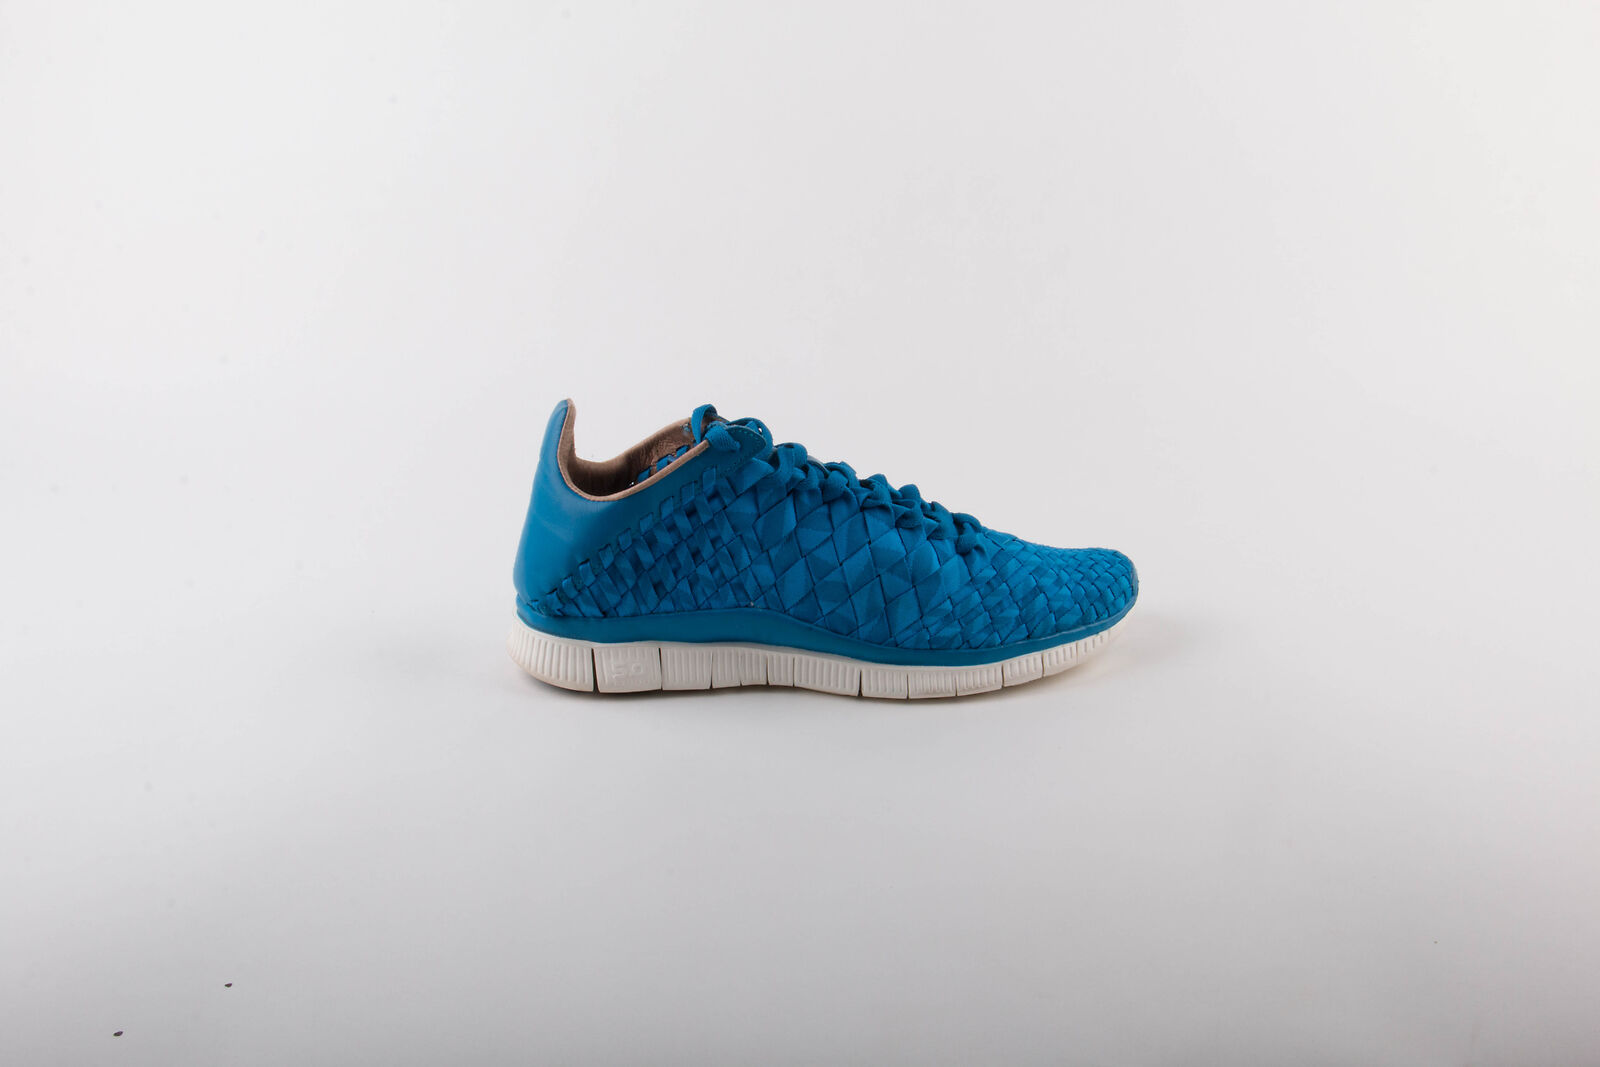 Nike Mens Free Blue Inneva Woven SP Photo Blue Free 598384-400 Size 8.5 Pre-owned 1ee72d